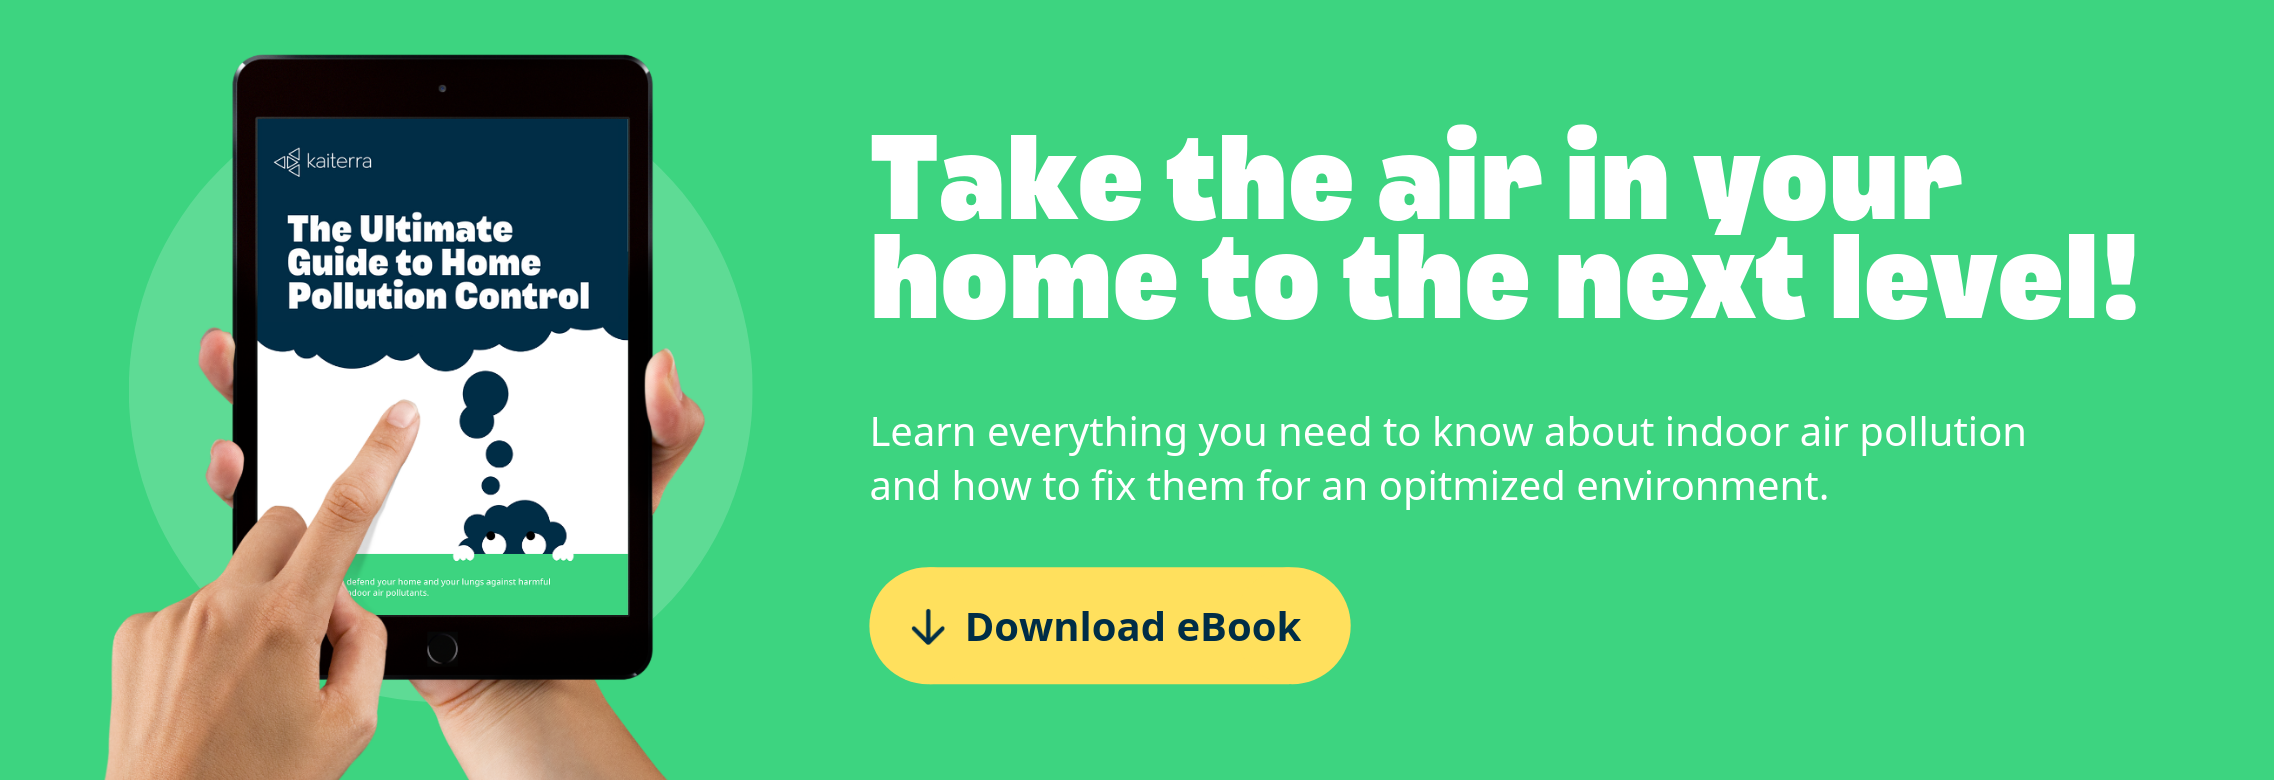 Download the ultimate guide to home pollution control